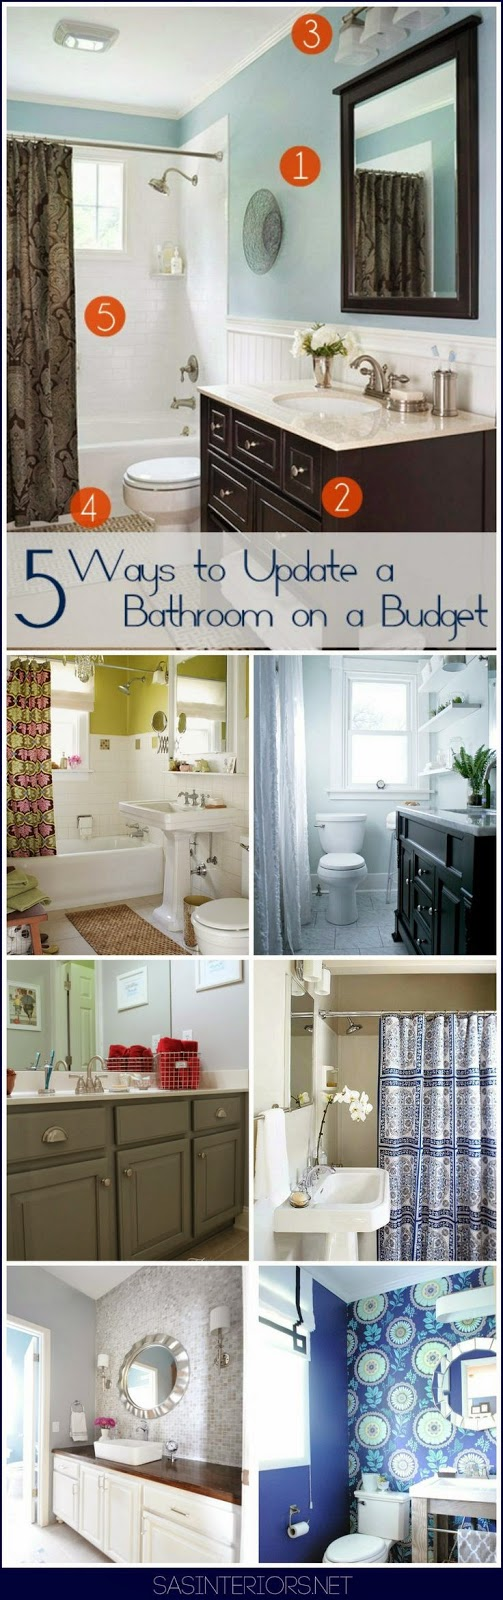 Decorating A One Bedroom Apartment On A Budget